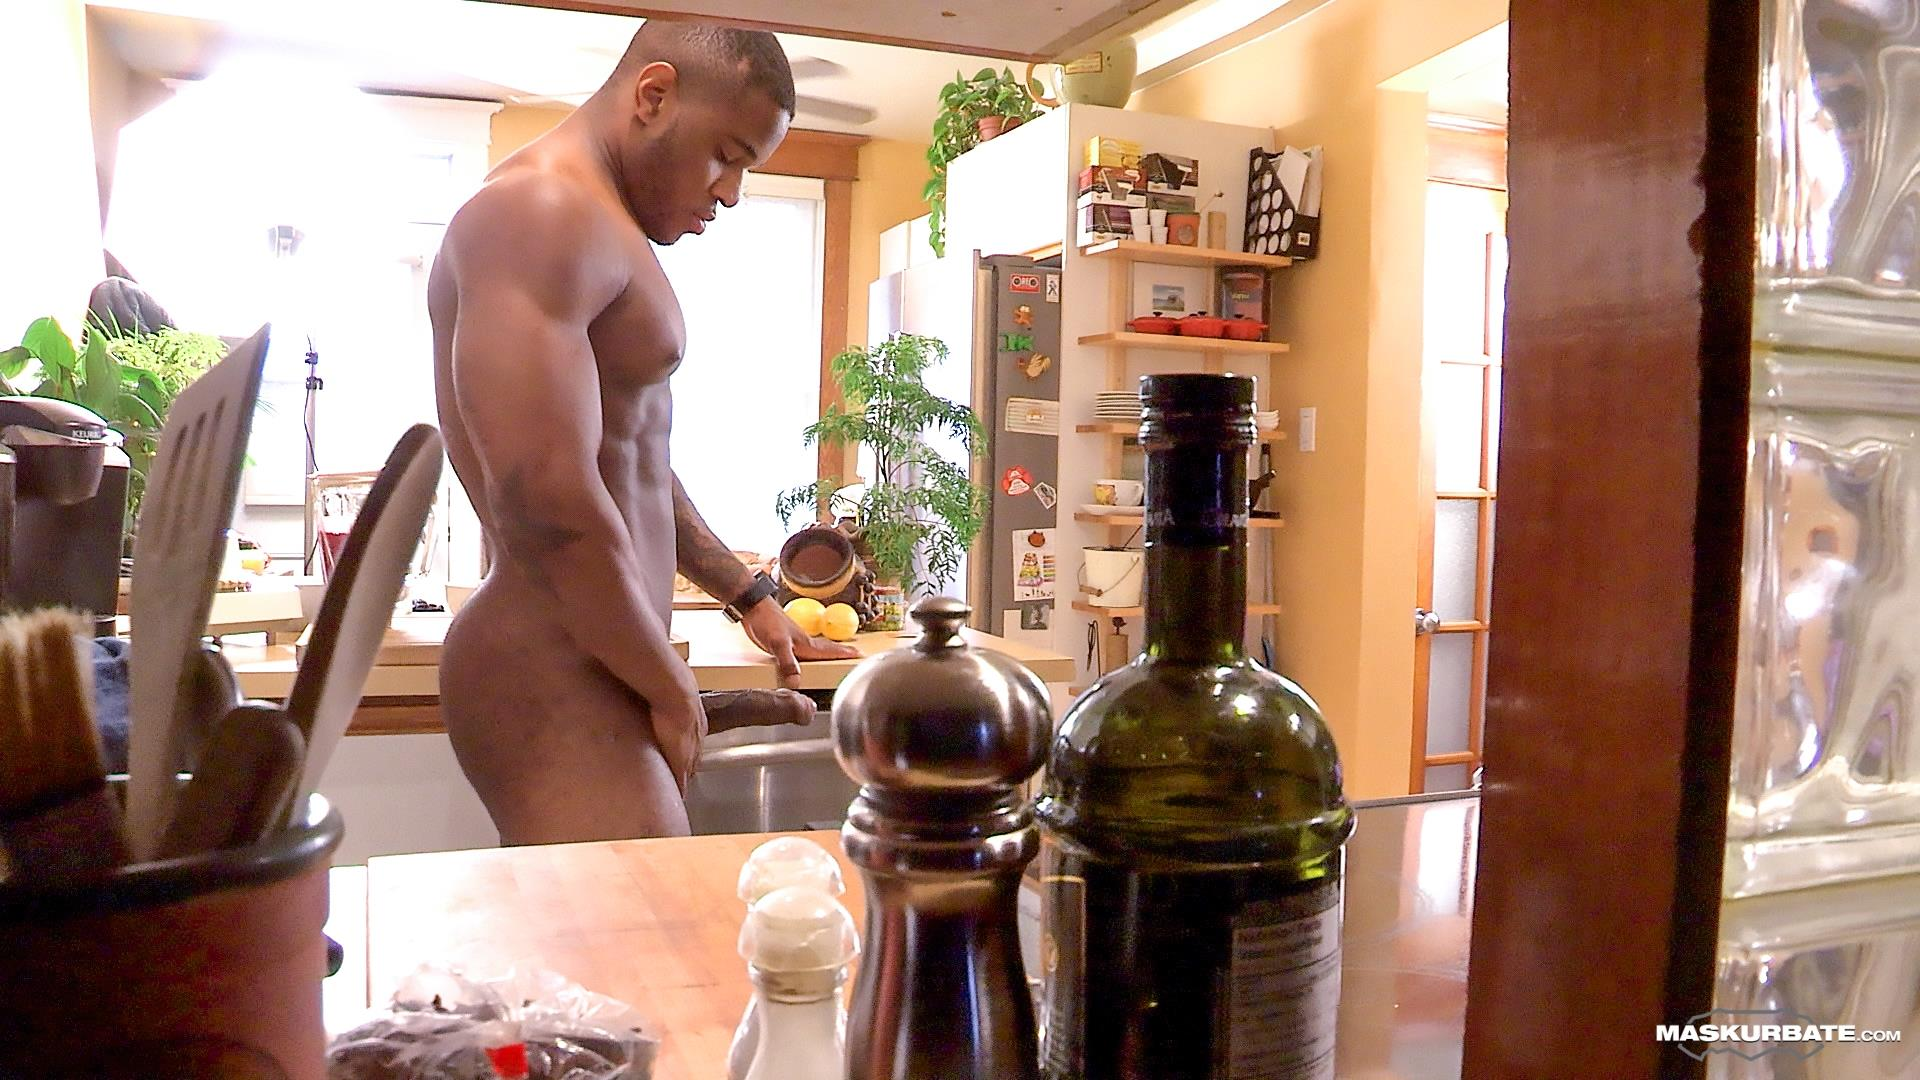 Maskurbate Adam Black Muscle Guy Jerking His Big Black Uncut Cock Amateur Gay Porn 10